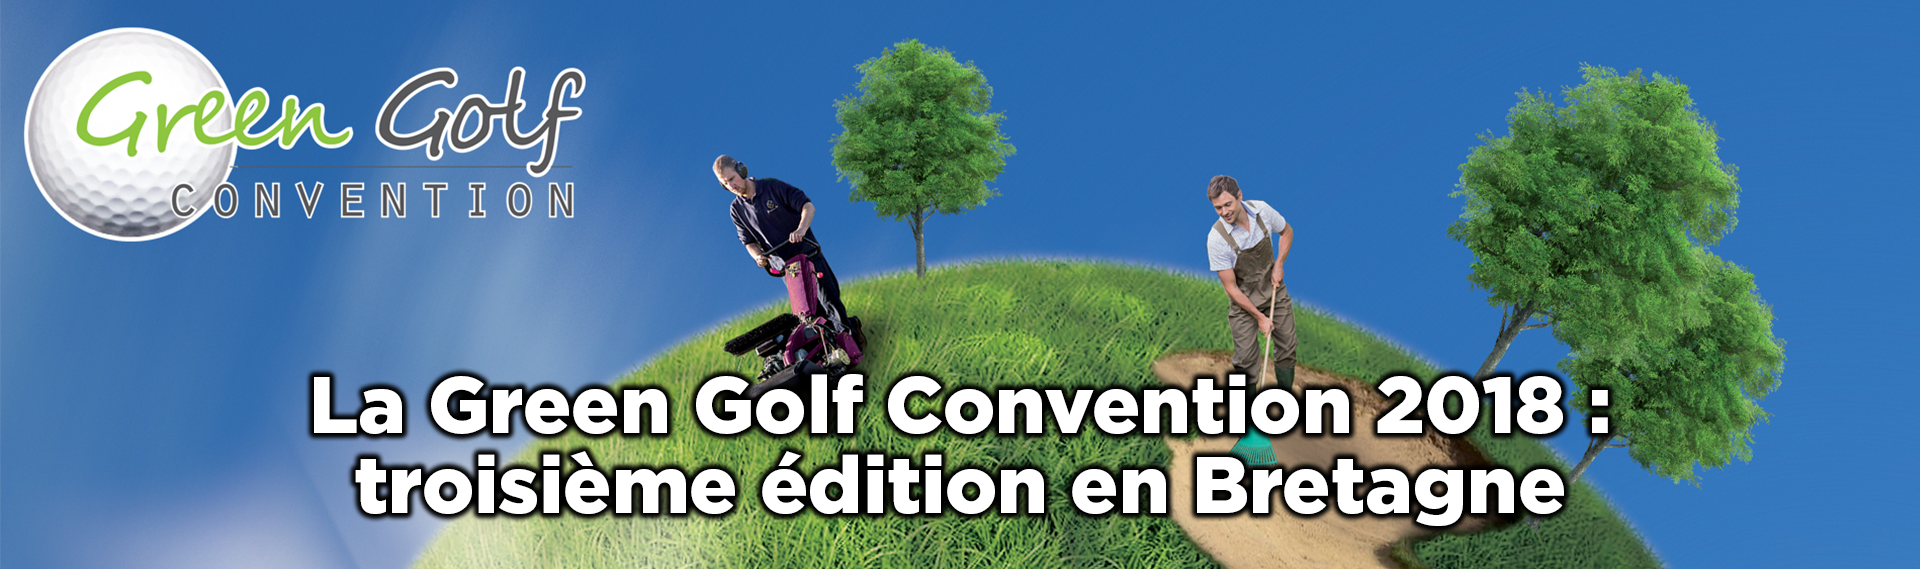 green-golf-convention-inscriptions